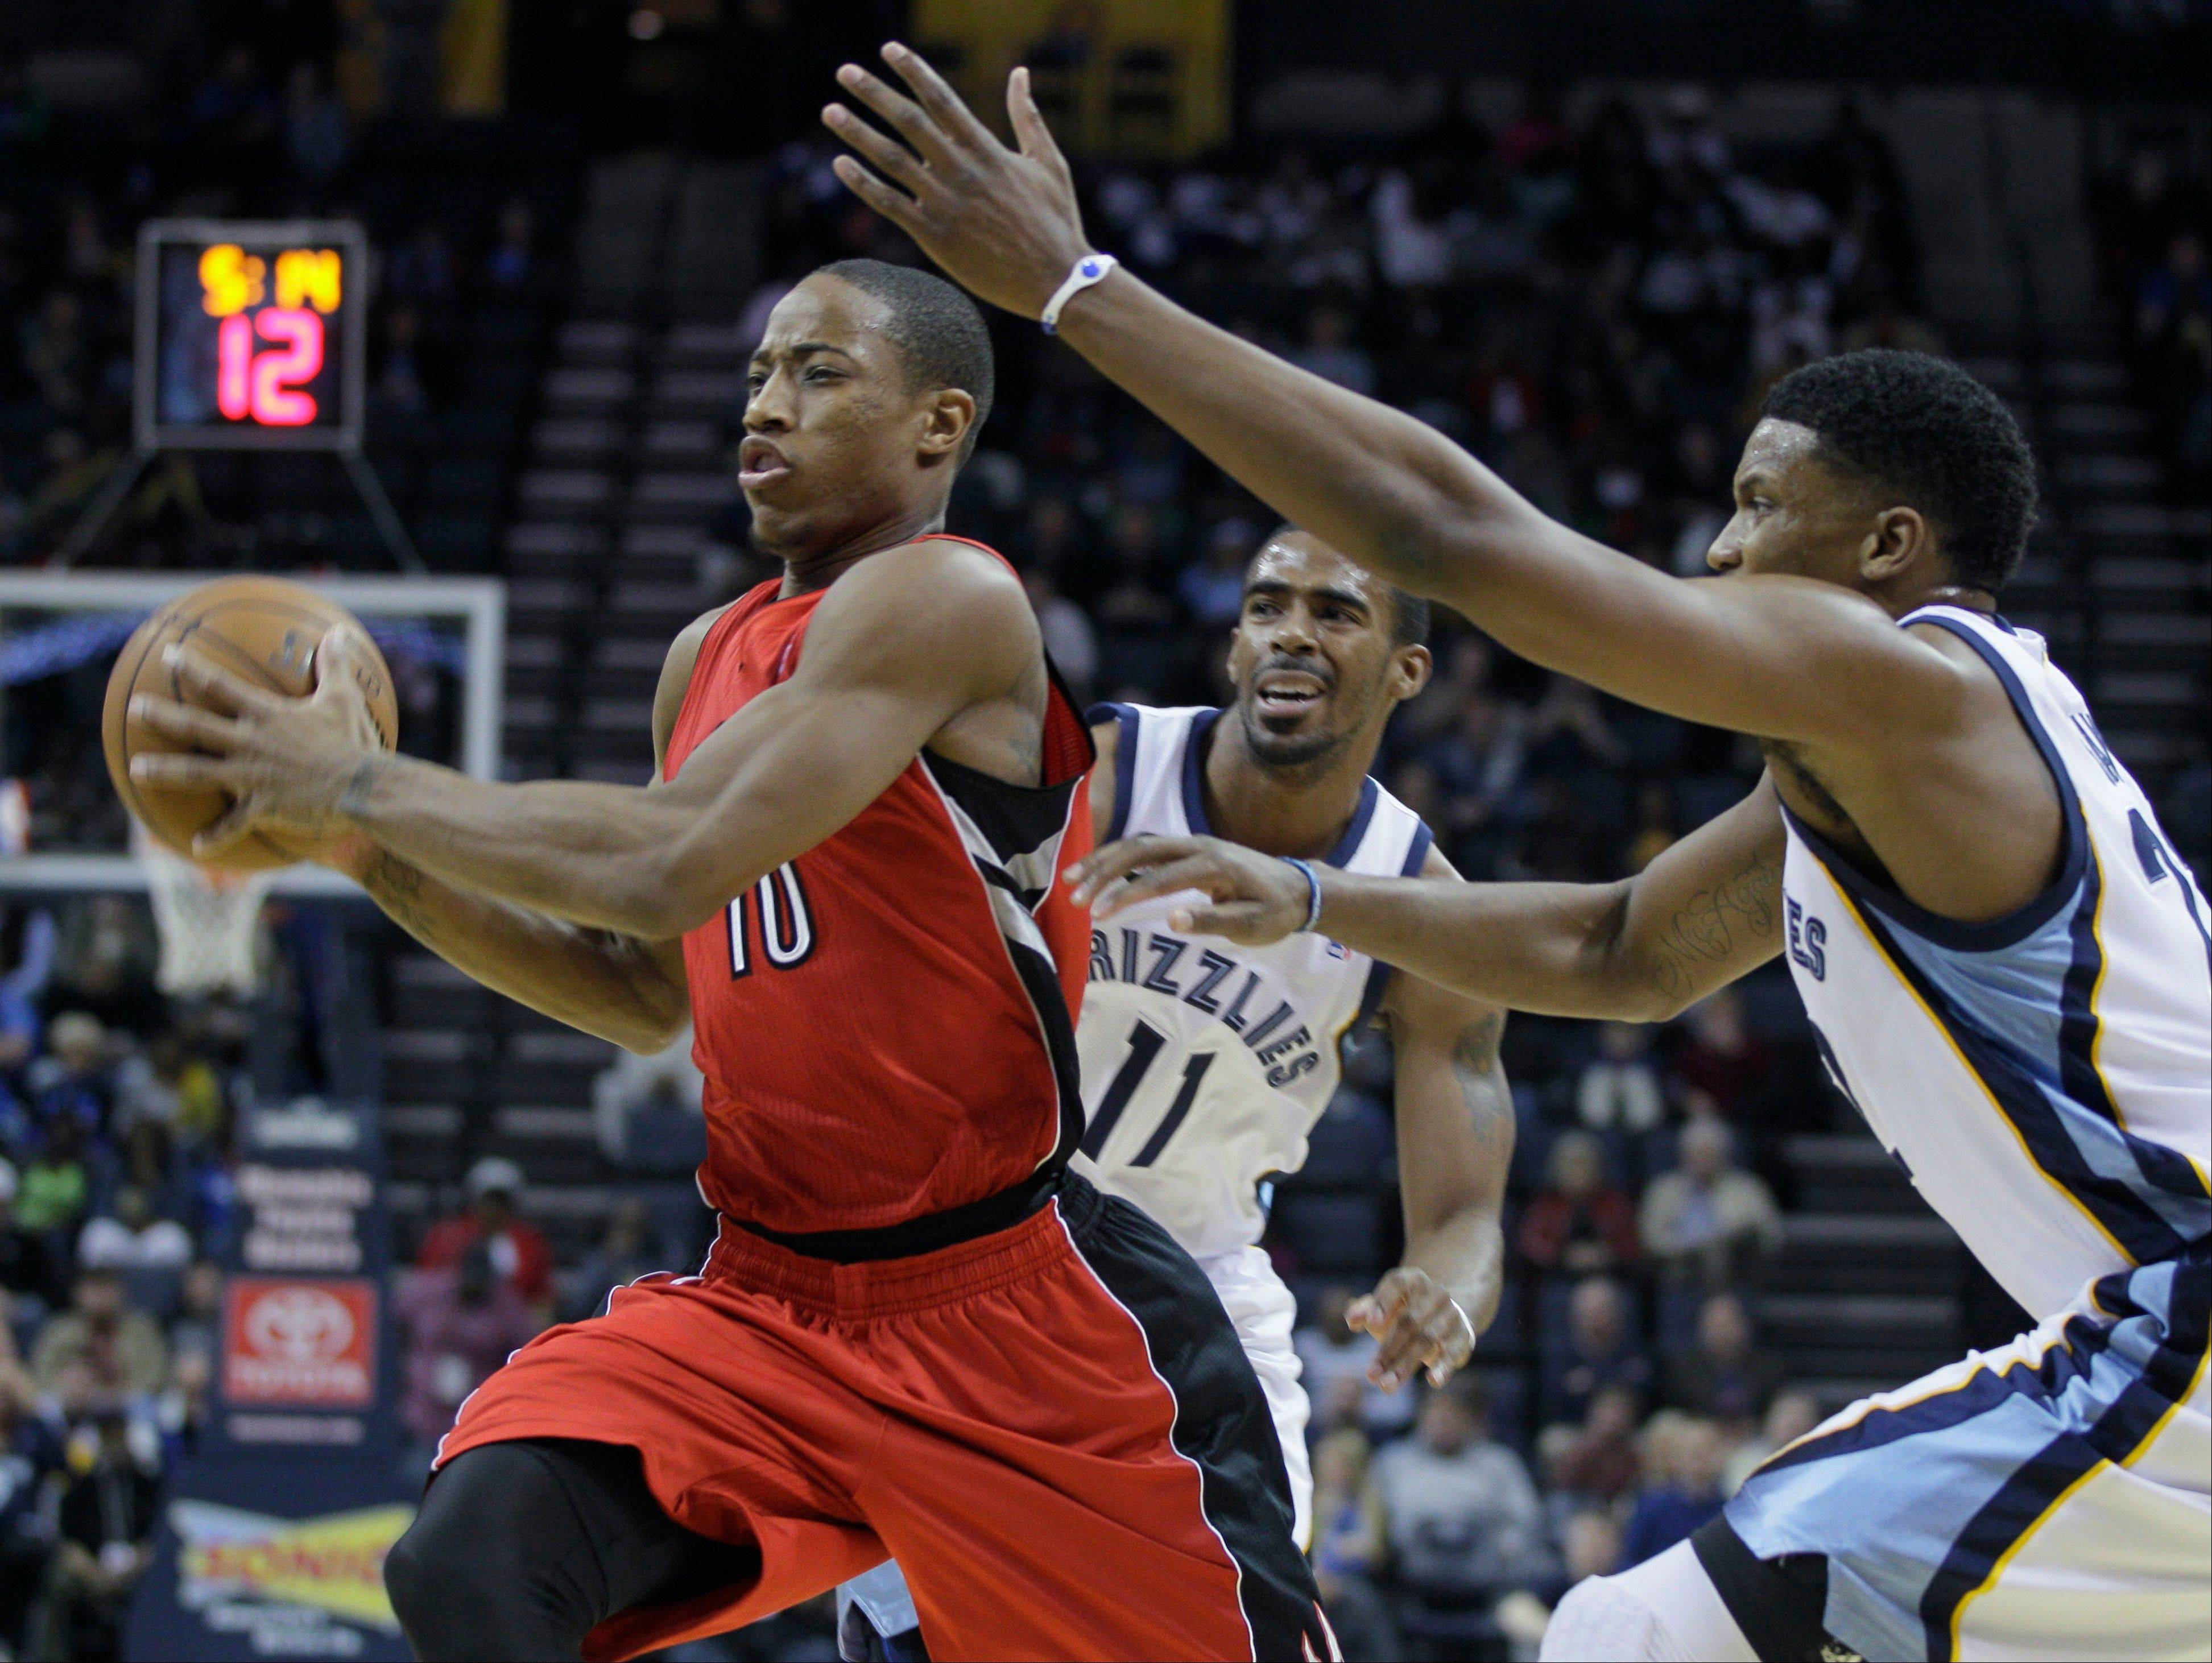 The Toronto Raptors' DeMar DeRozan (10) eludes the Memphis Grizzlies' Mike Conley (11) and Rudy Gay, right, Wednesday during the first half in Memphis, Tenn.